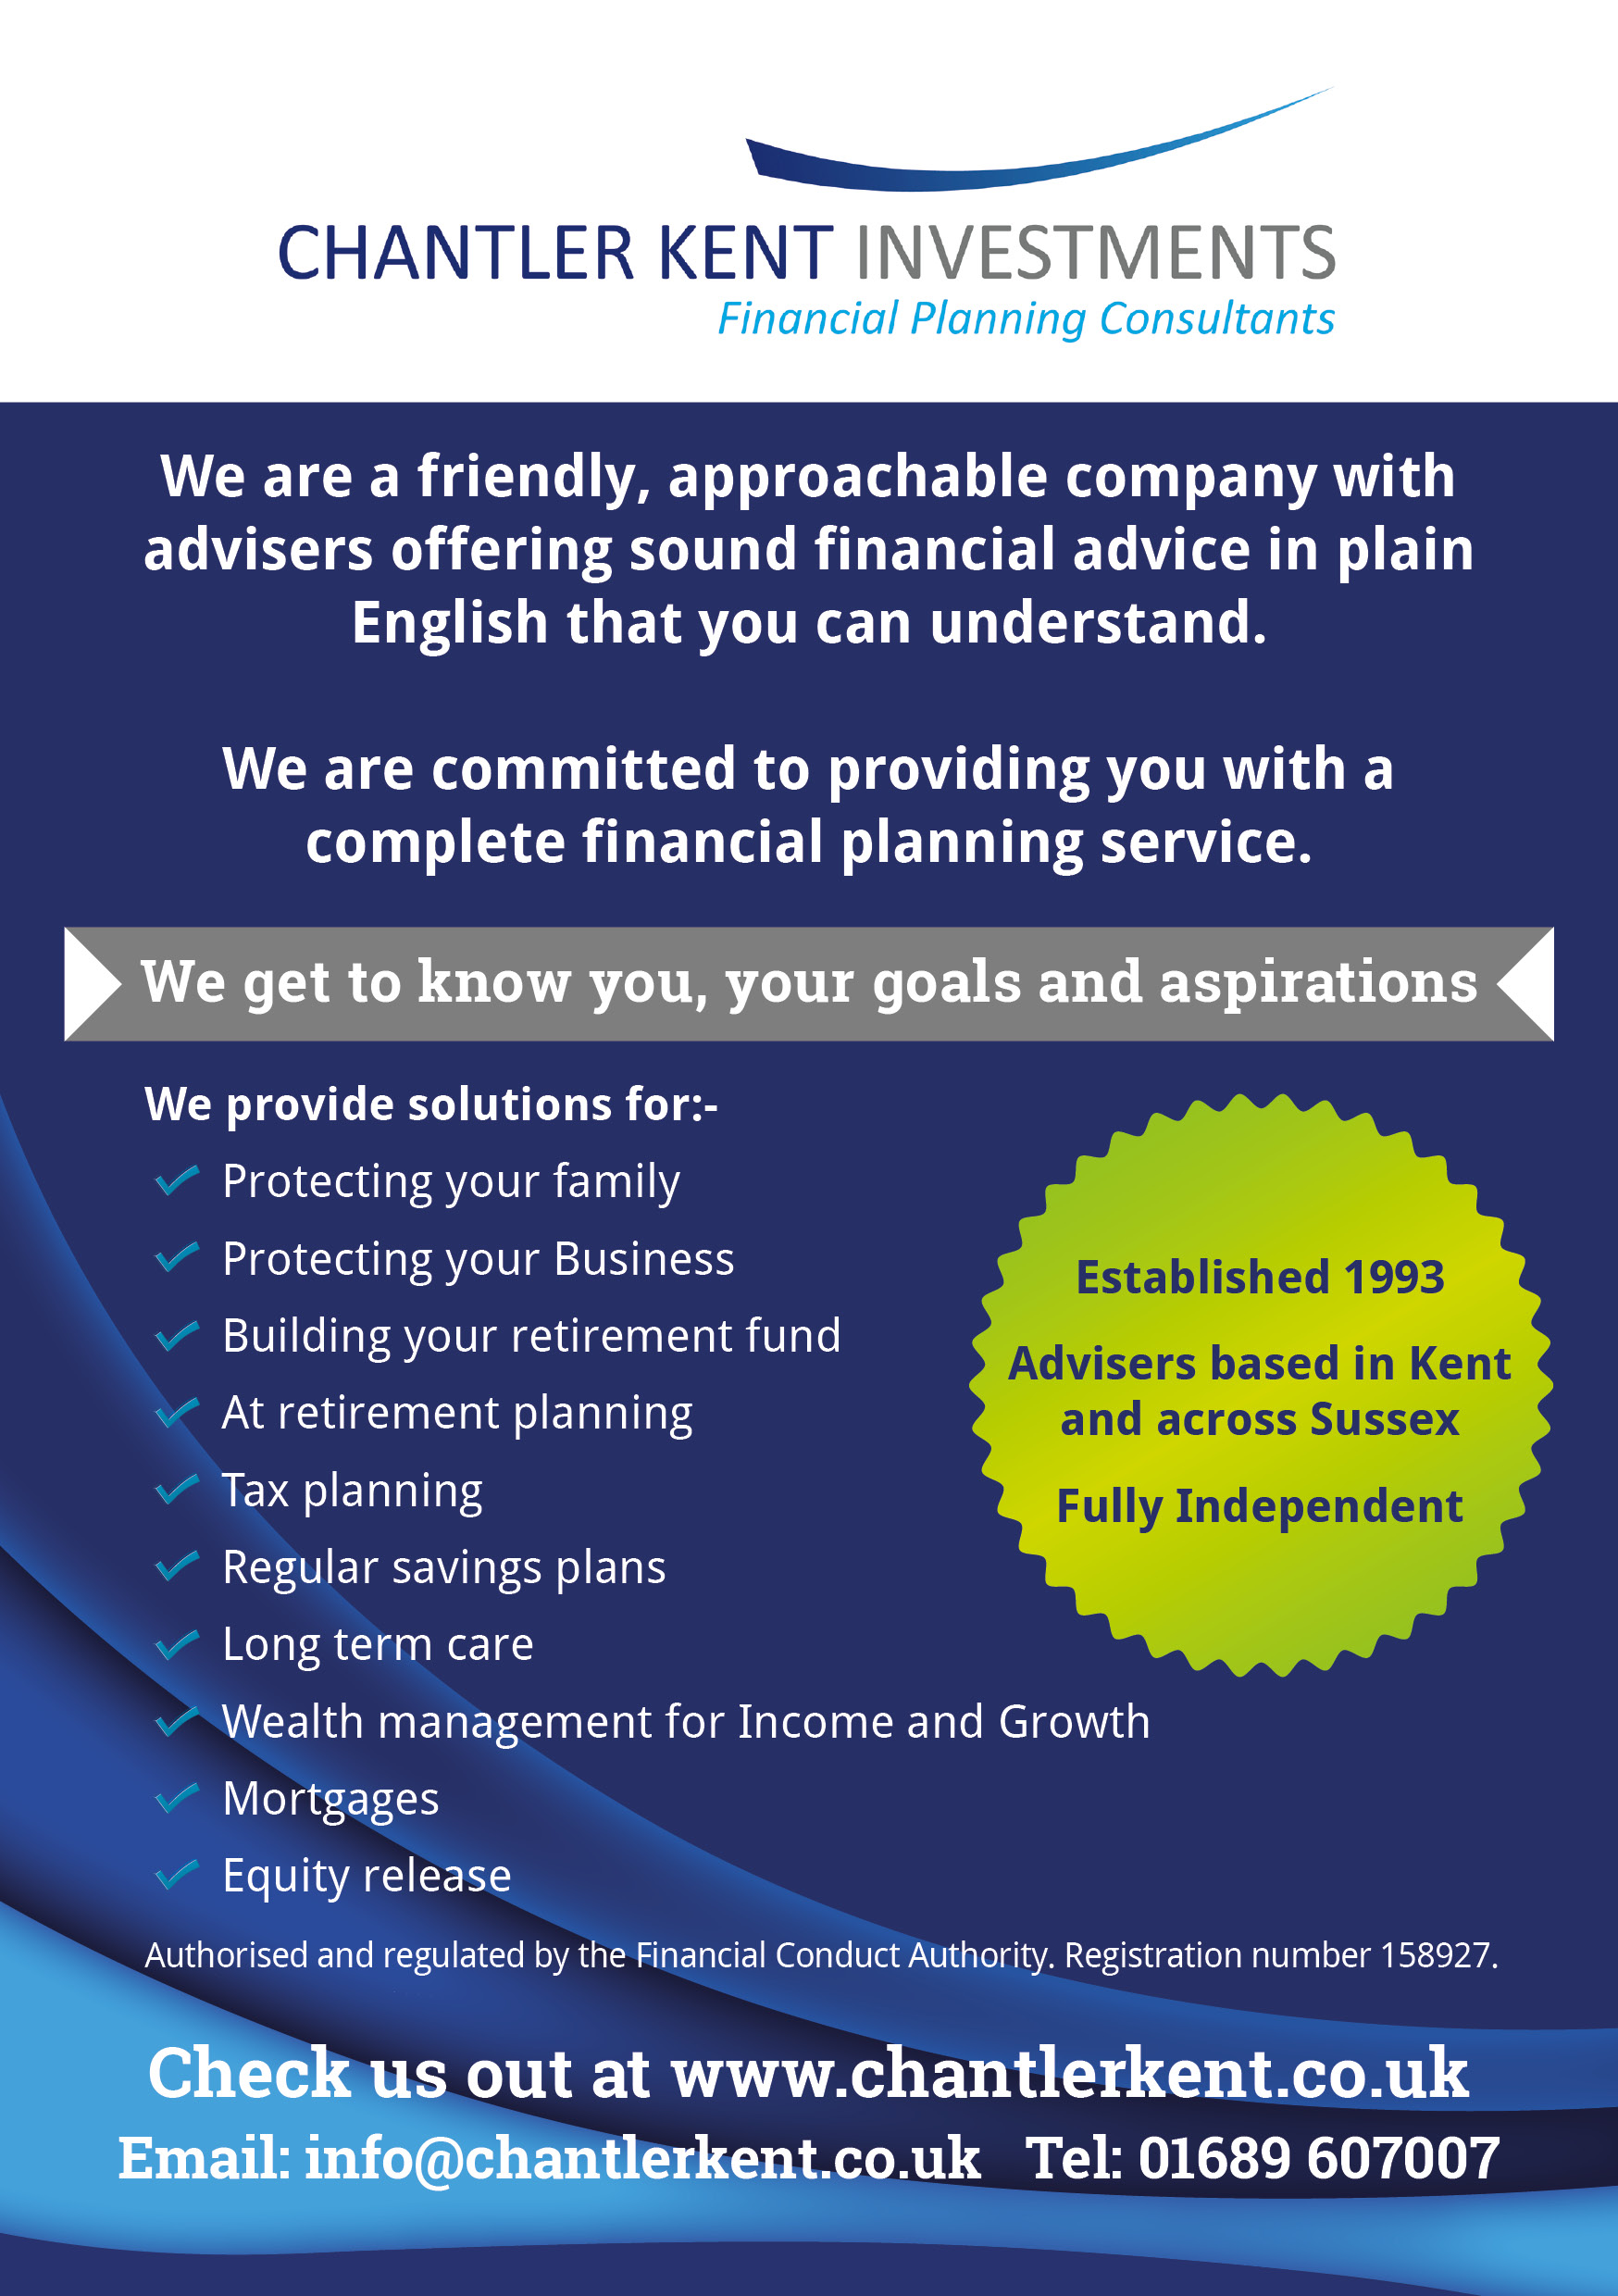 Flyer design - Chantler Kent Investements